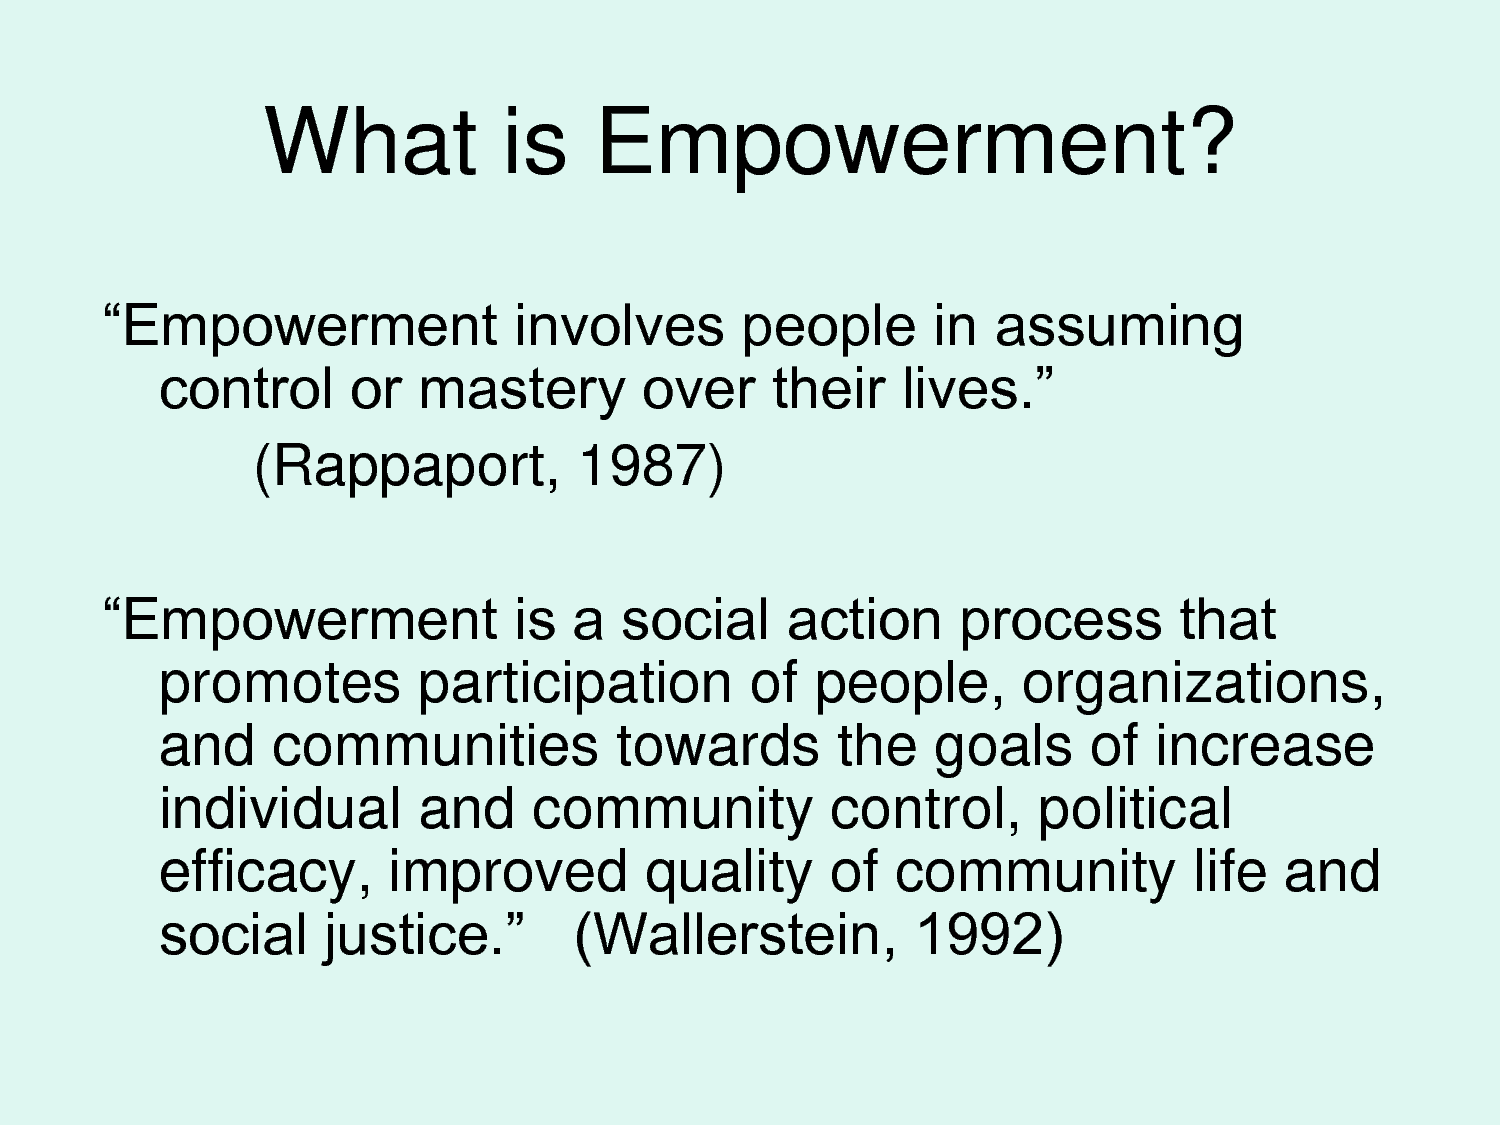 Self Empowerment Quotes Selfempowerment Selfempowerment Selfempowerment  Empowerment